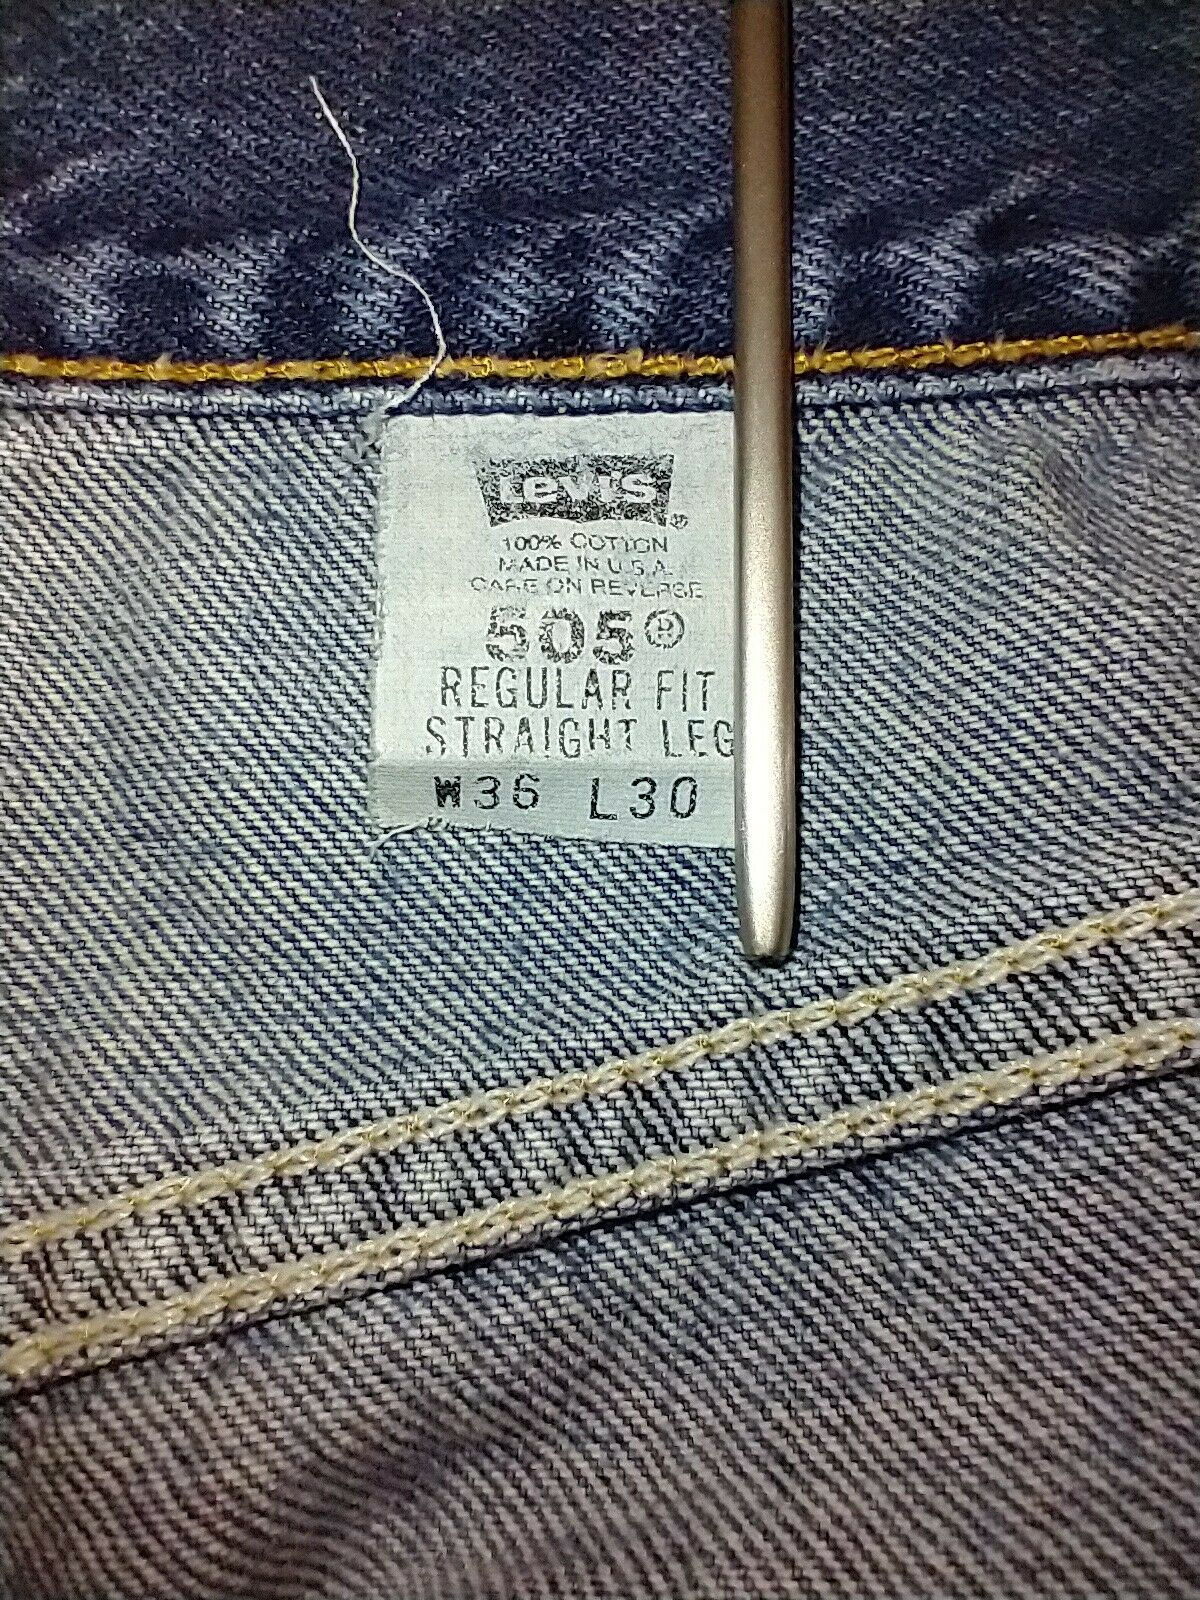 Levi's 505 Jean's Made in the USA Men's size 36x3… - image 10